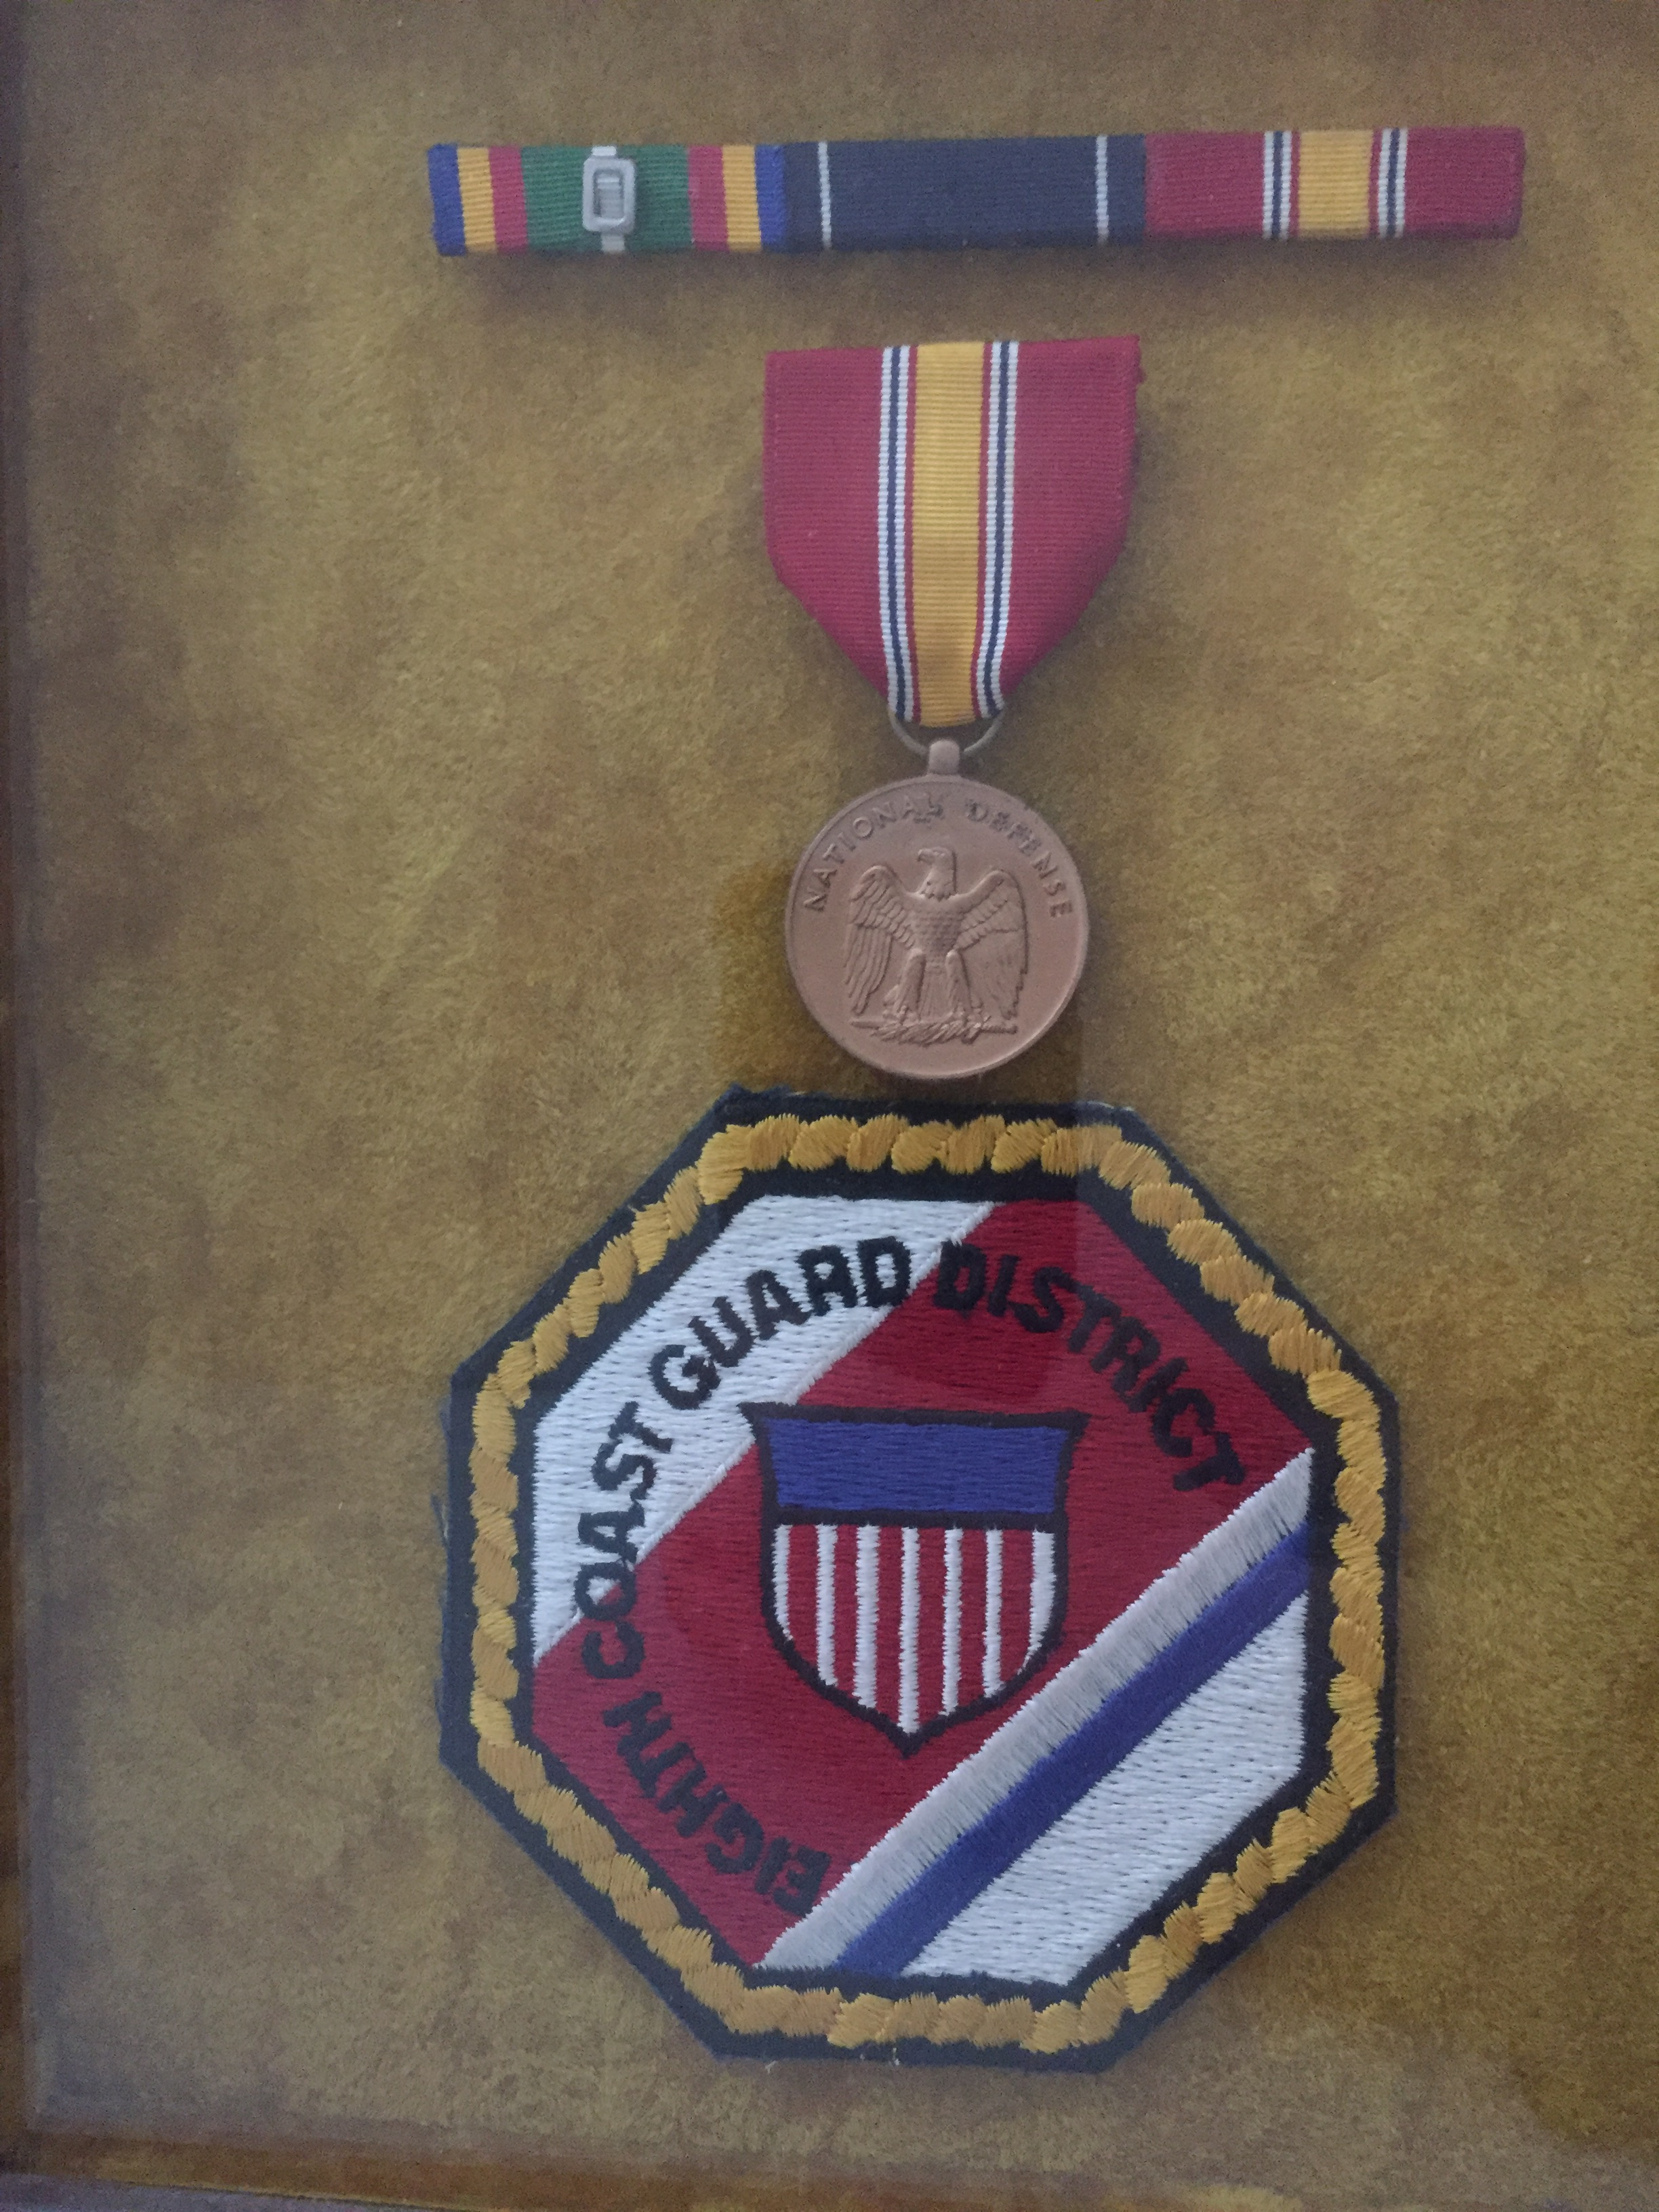 Shadow box containing medals and patches